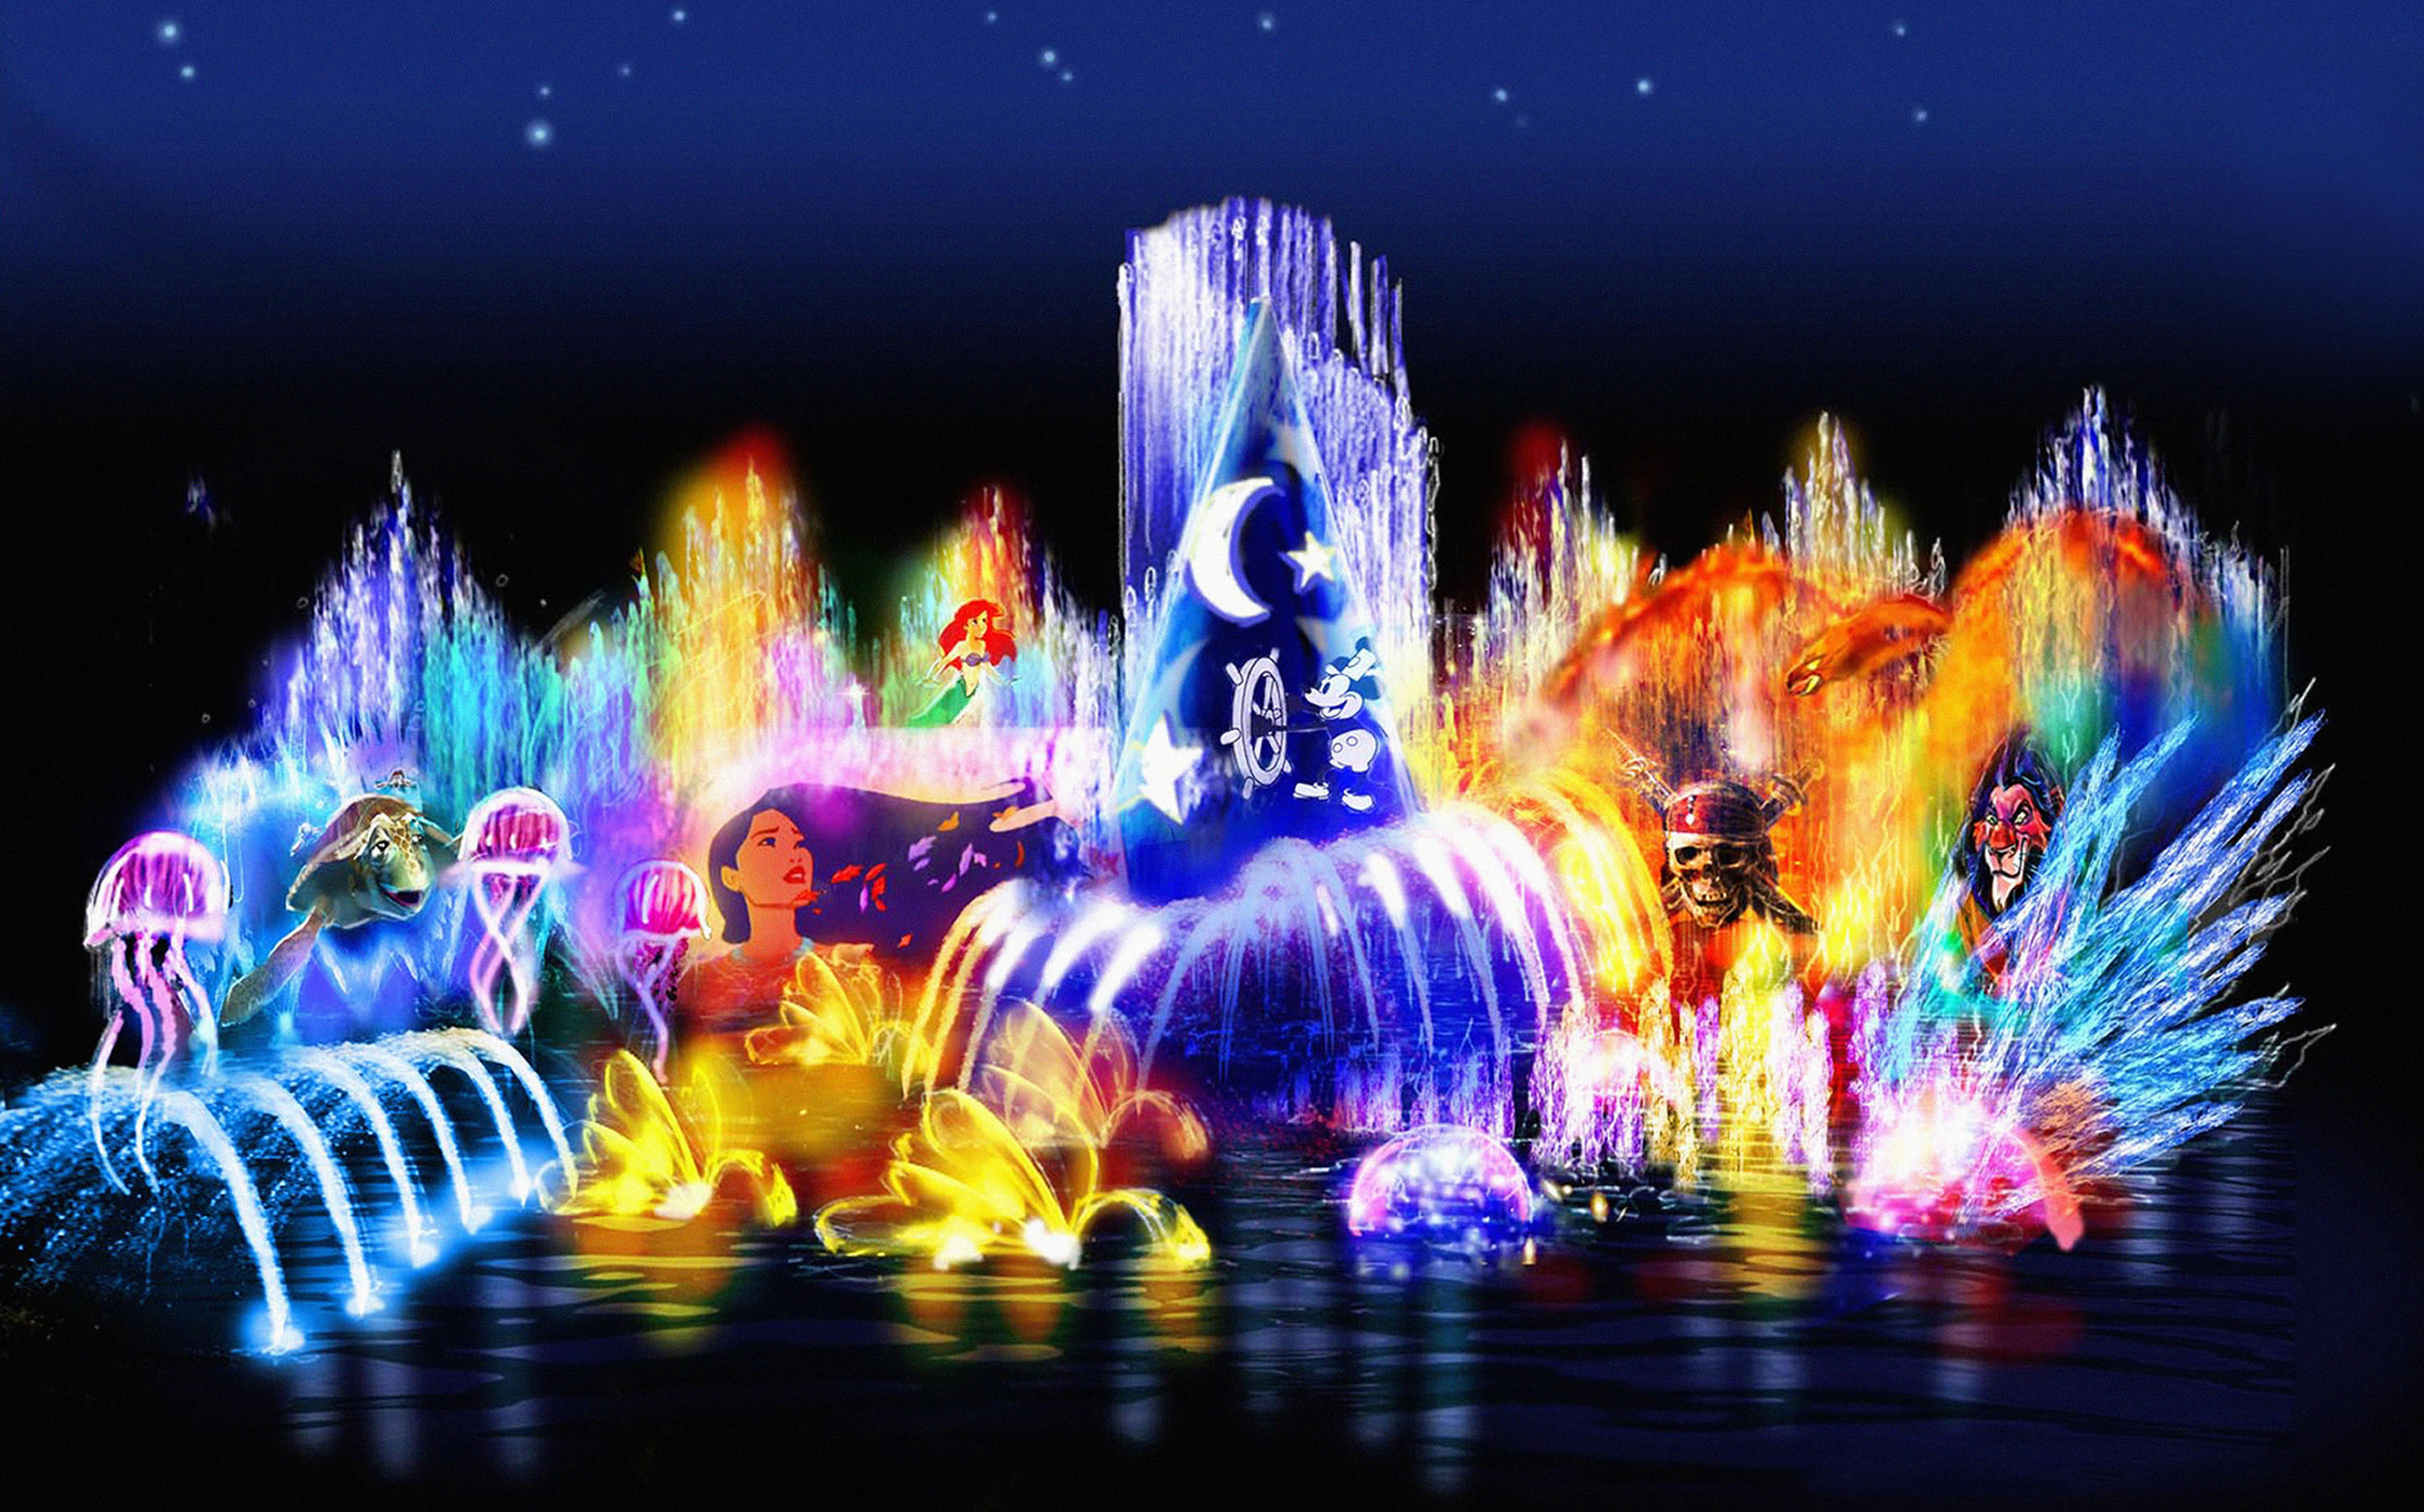 Walt Disney Wallpapers World of Color walt disney characters 28773151 2560x1597